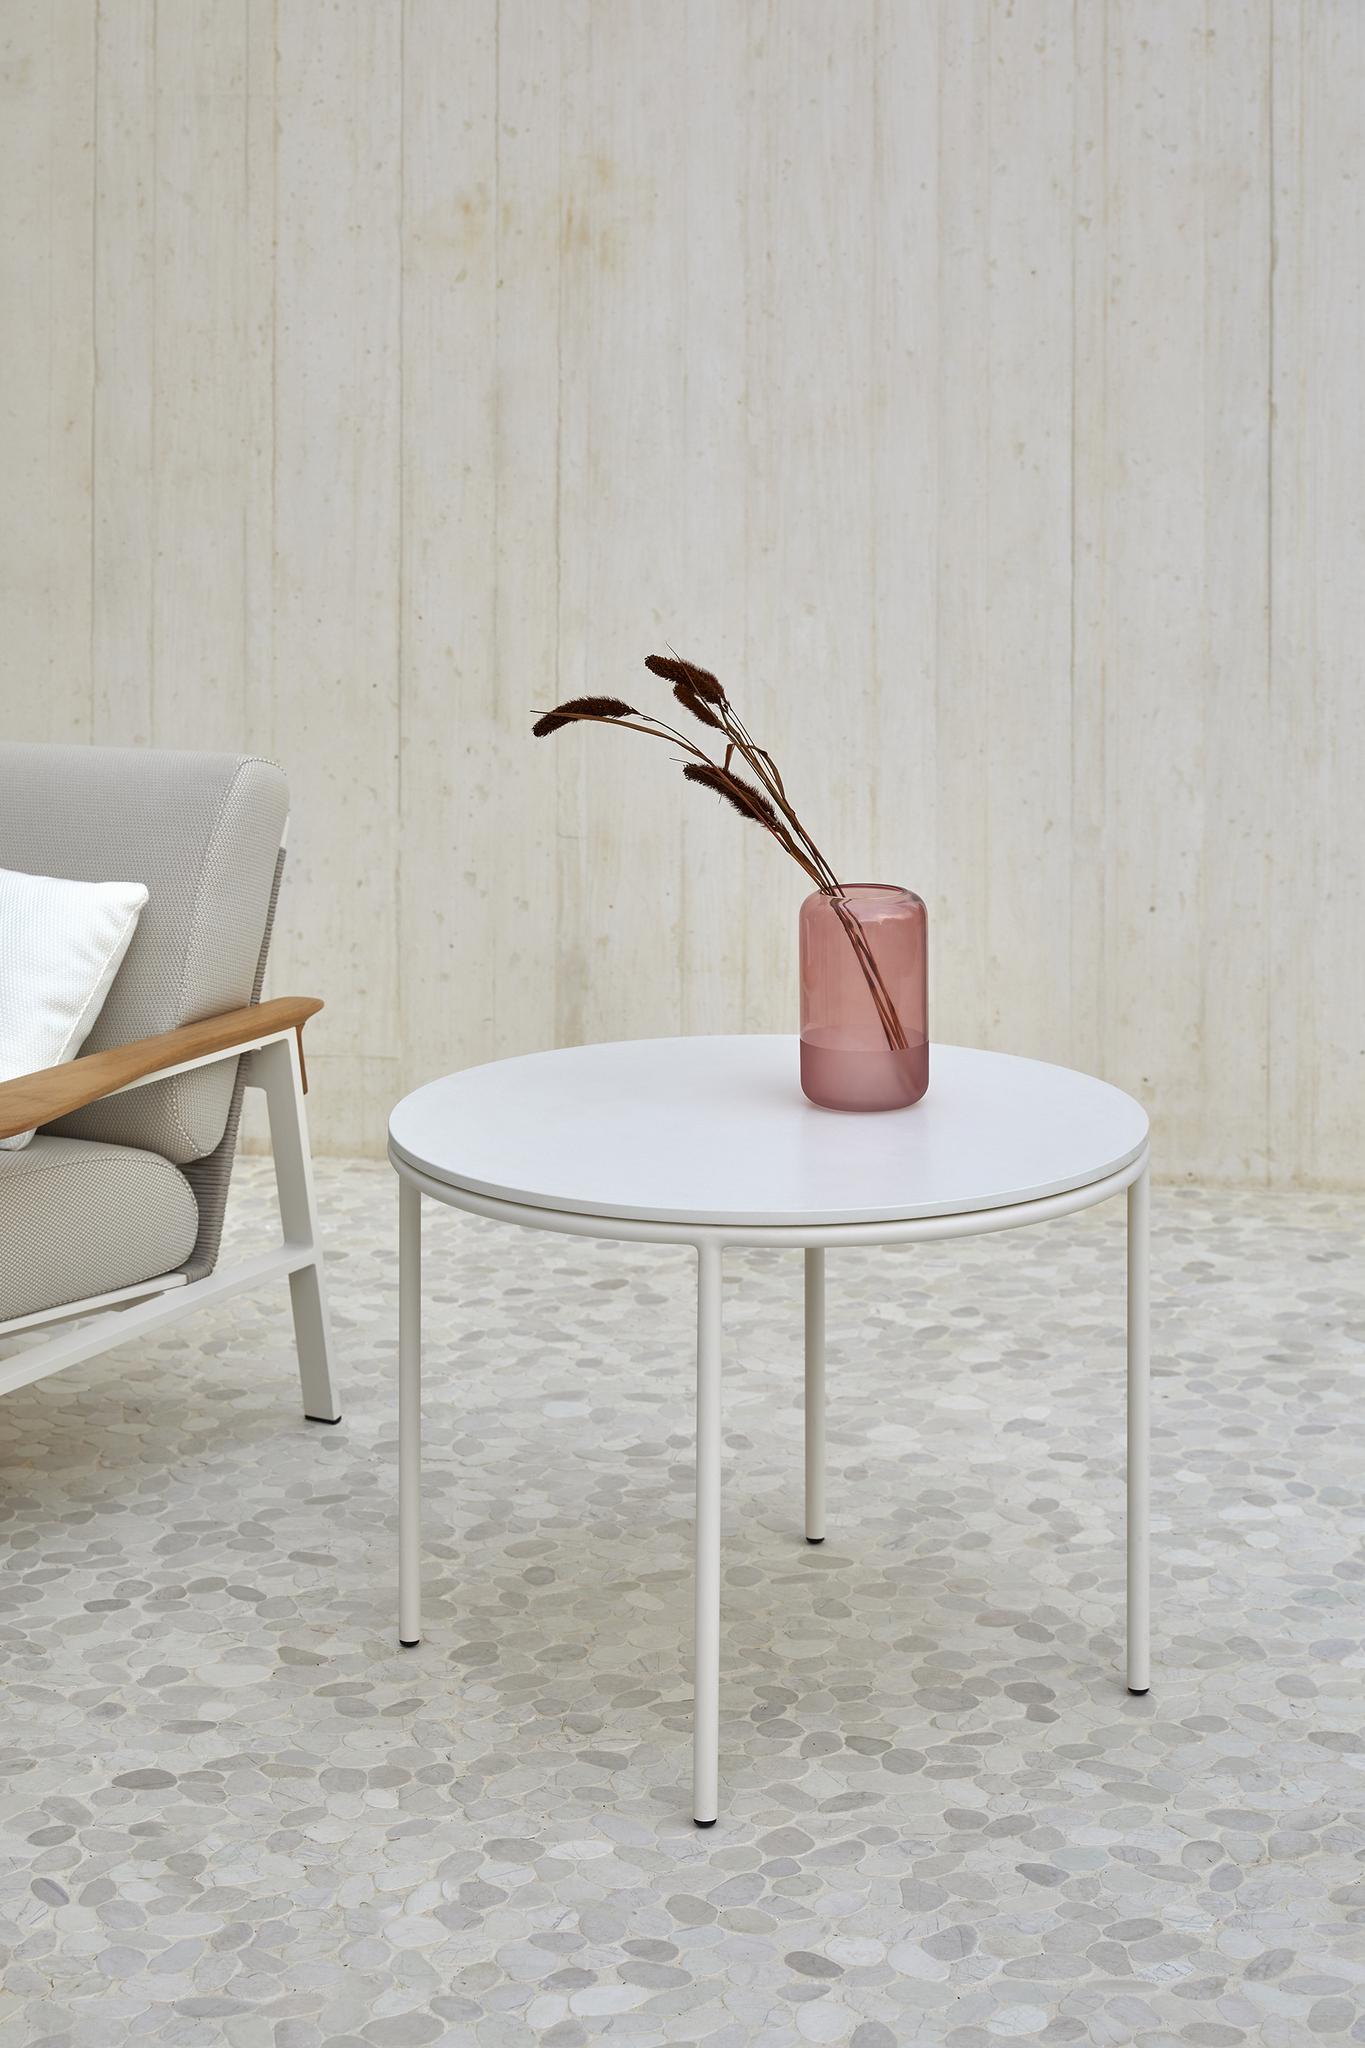 point_city_round_side_table_2_corefurniture